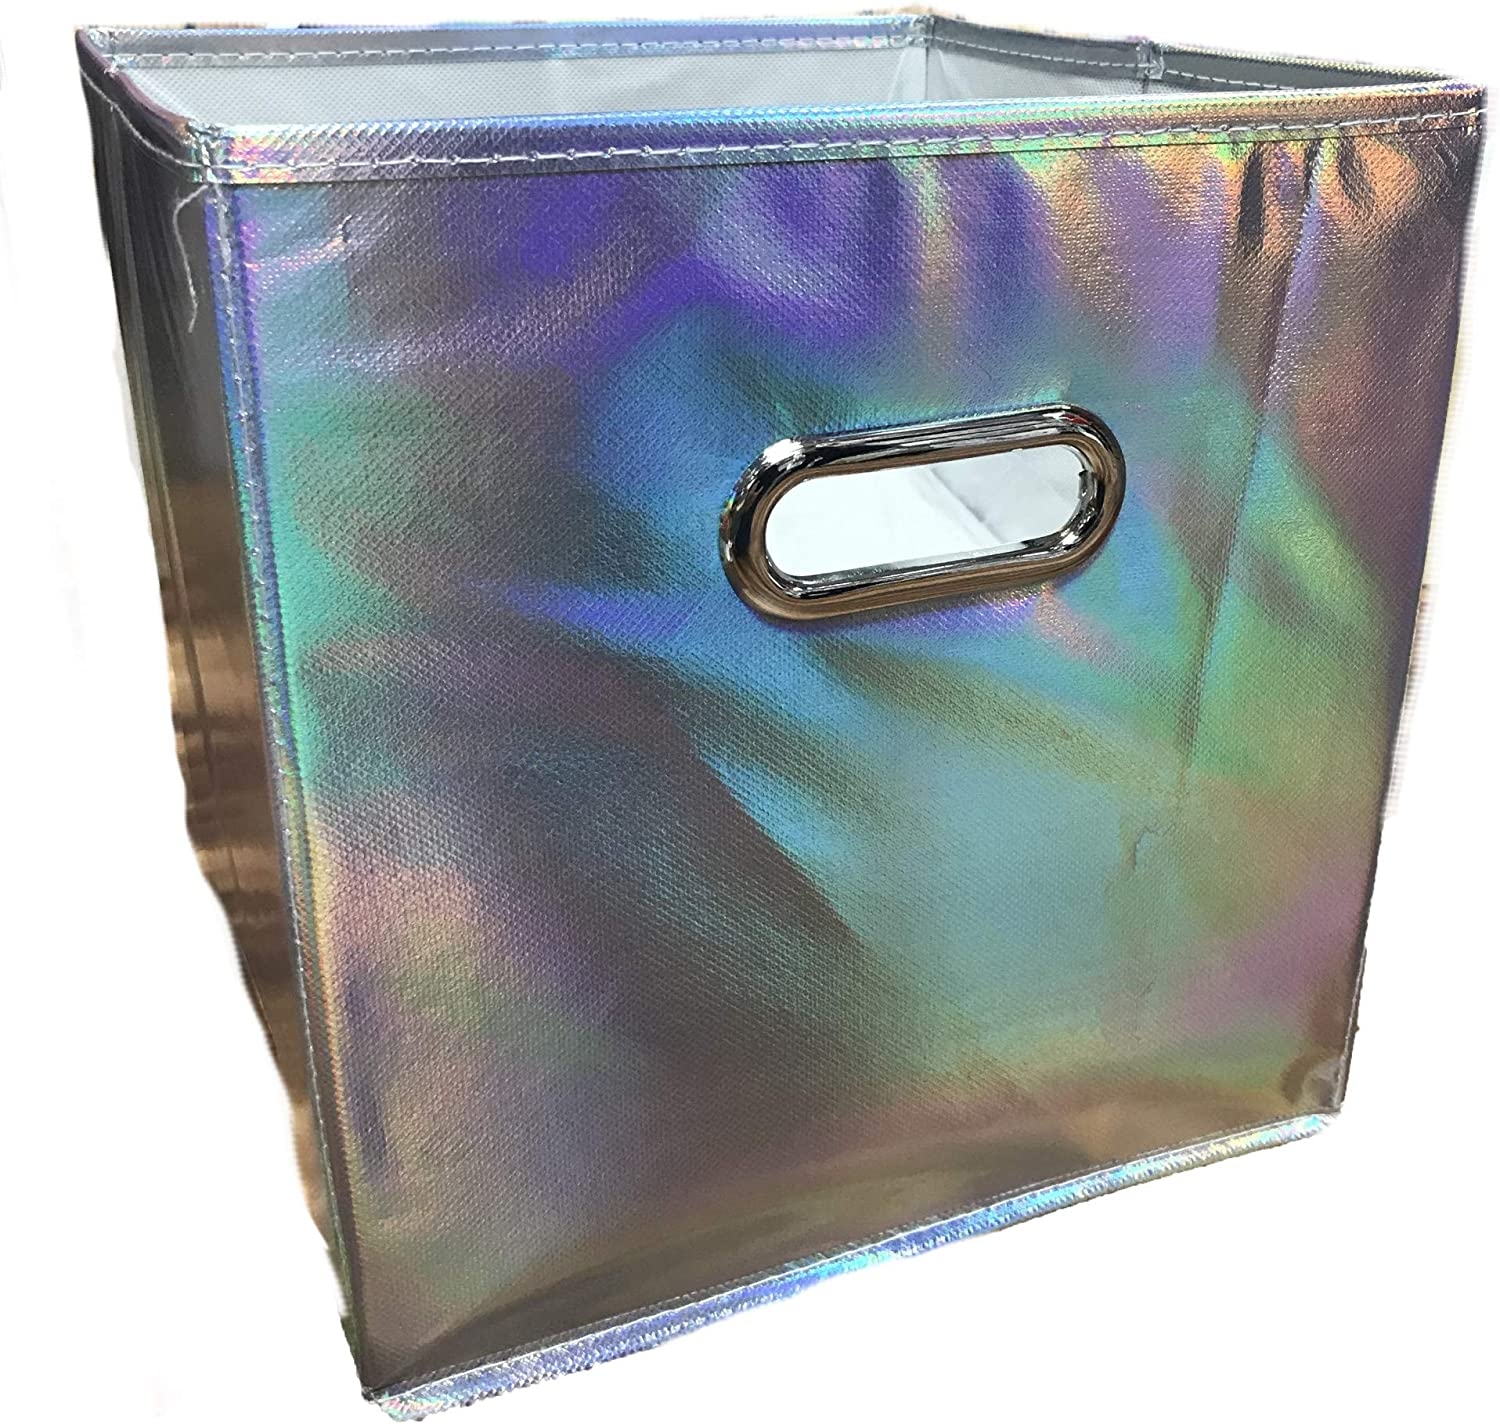 Innovative Home Creations Square Fabric Storage Cube 10.5